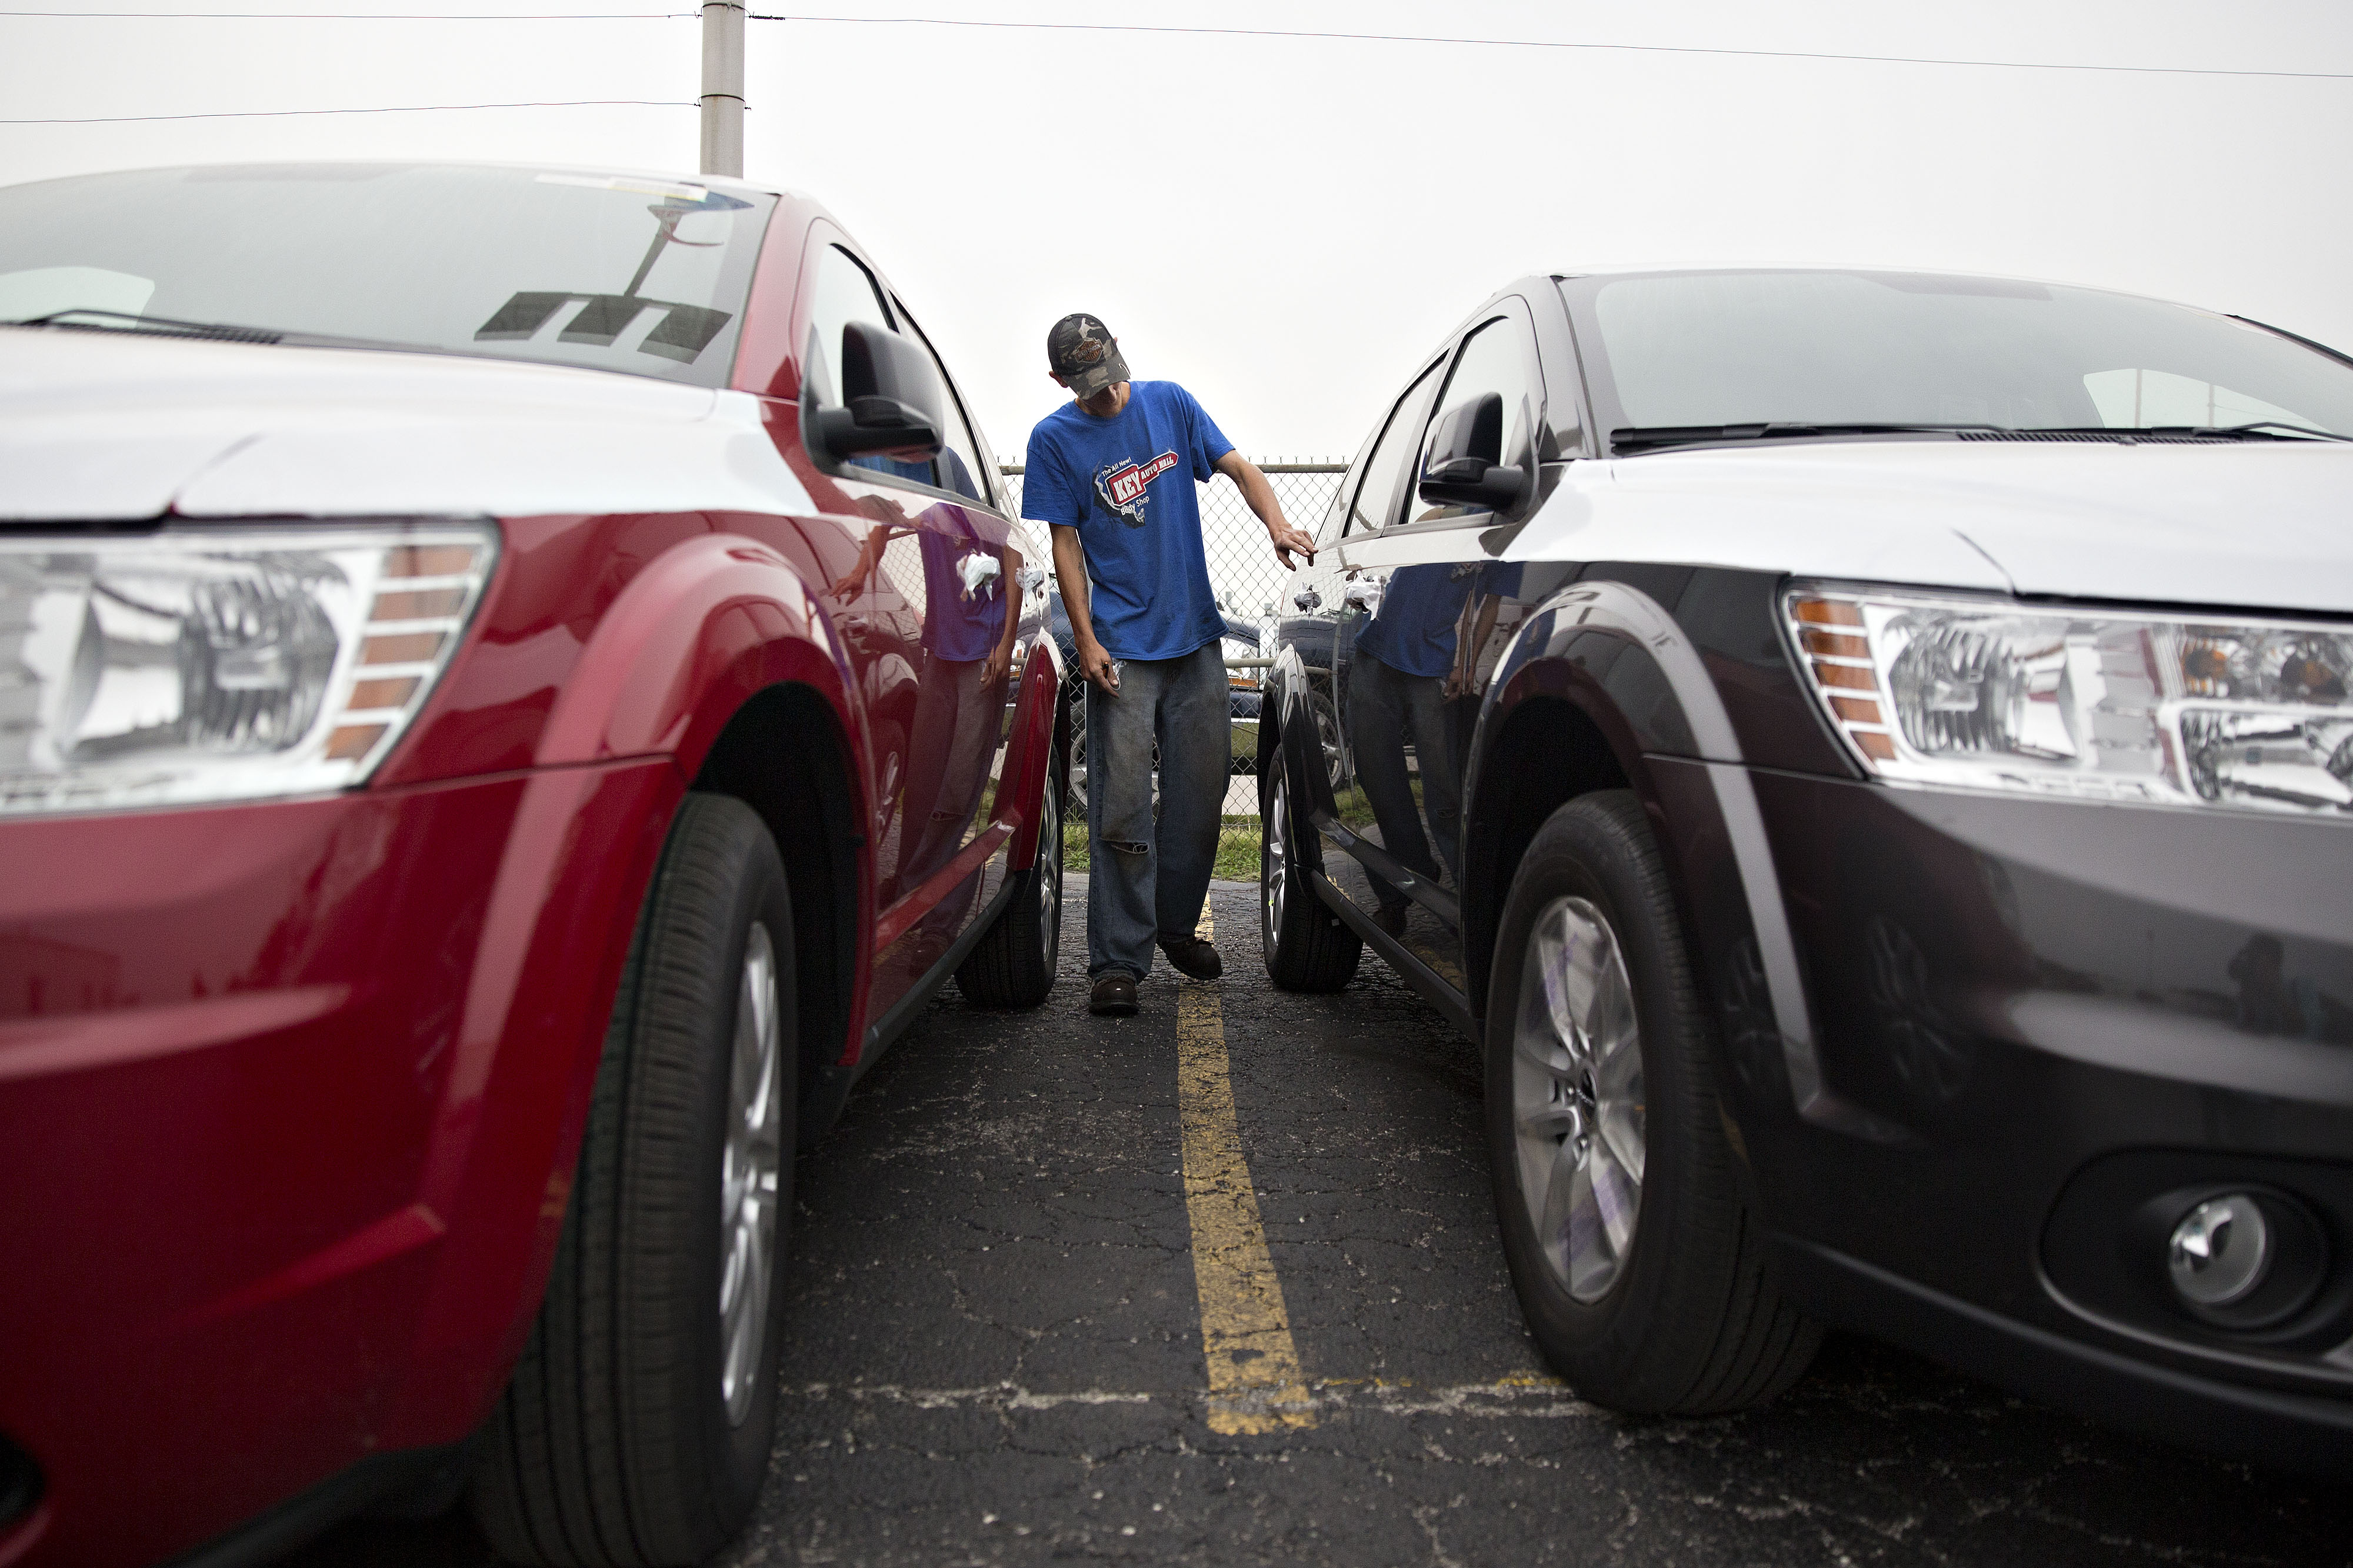 Exceptional auto sales are coming at the same time that other U.S. economic indicators are painting more of a mixed picture.